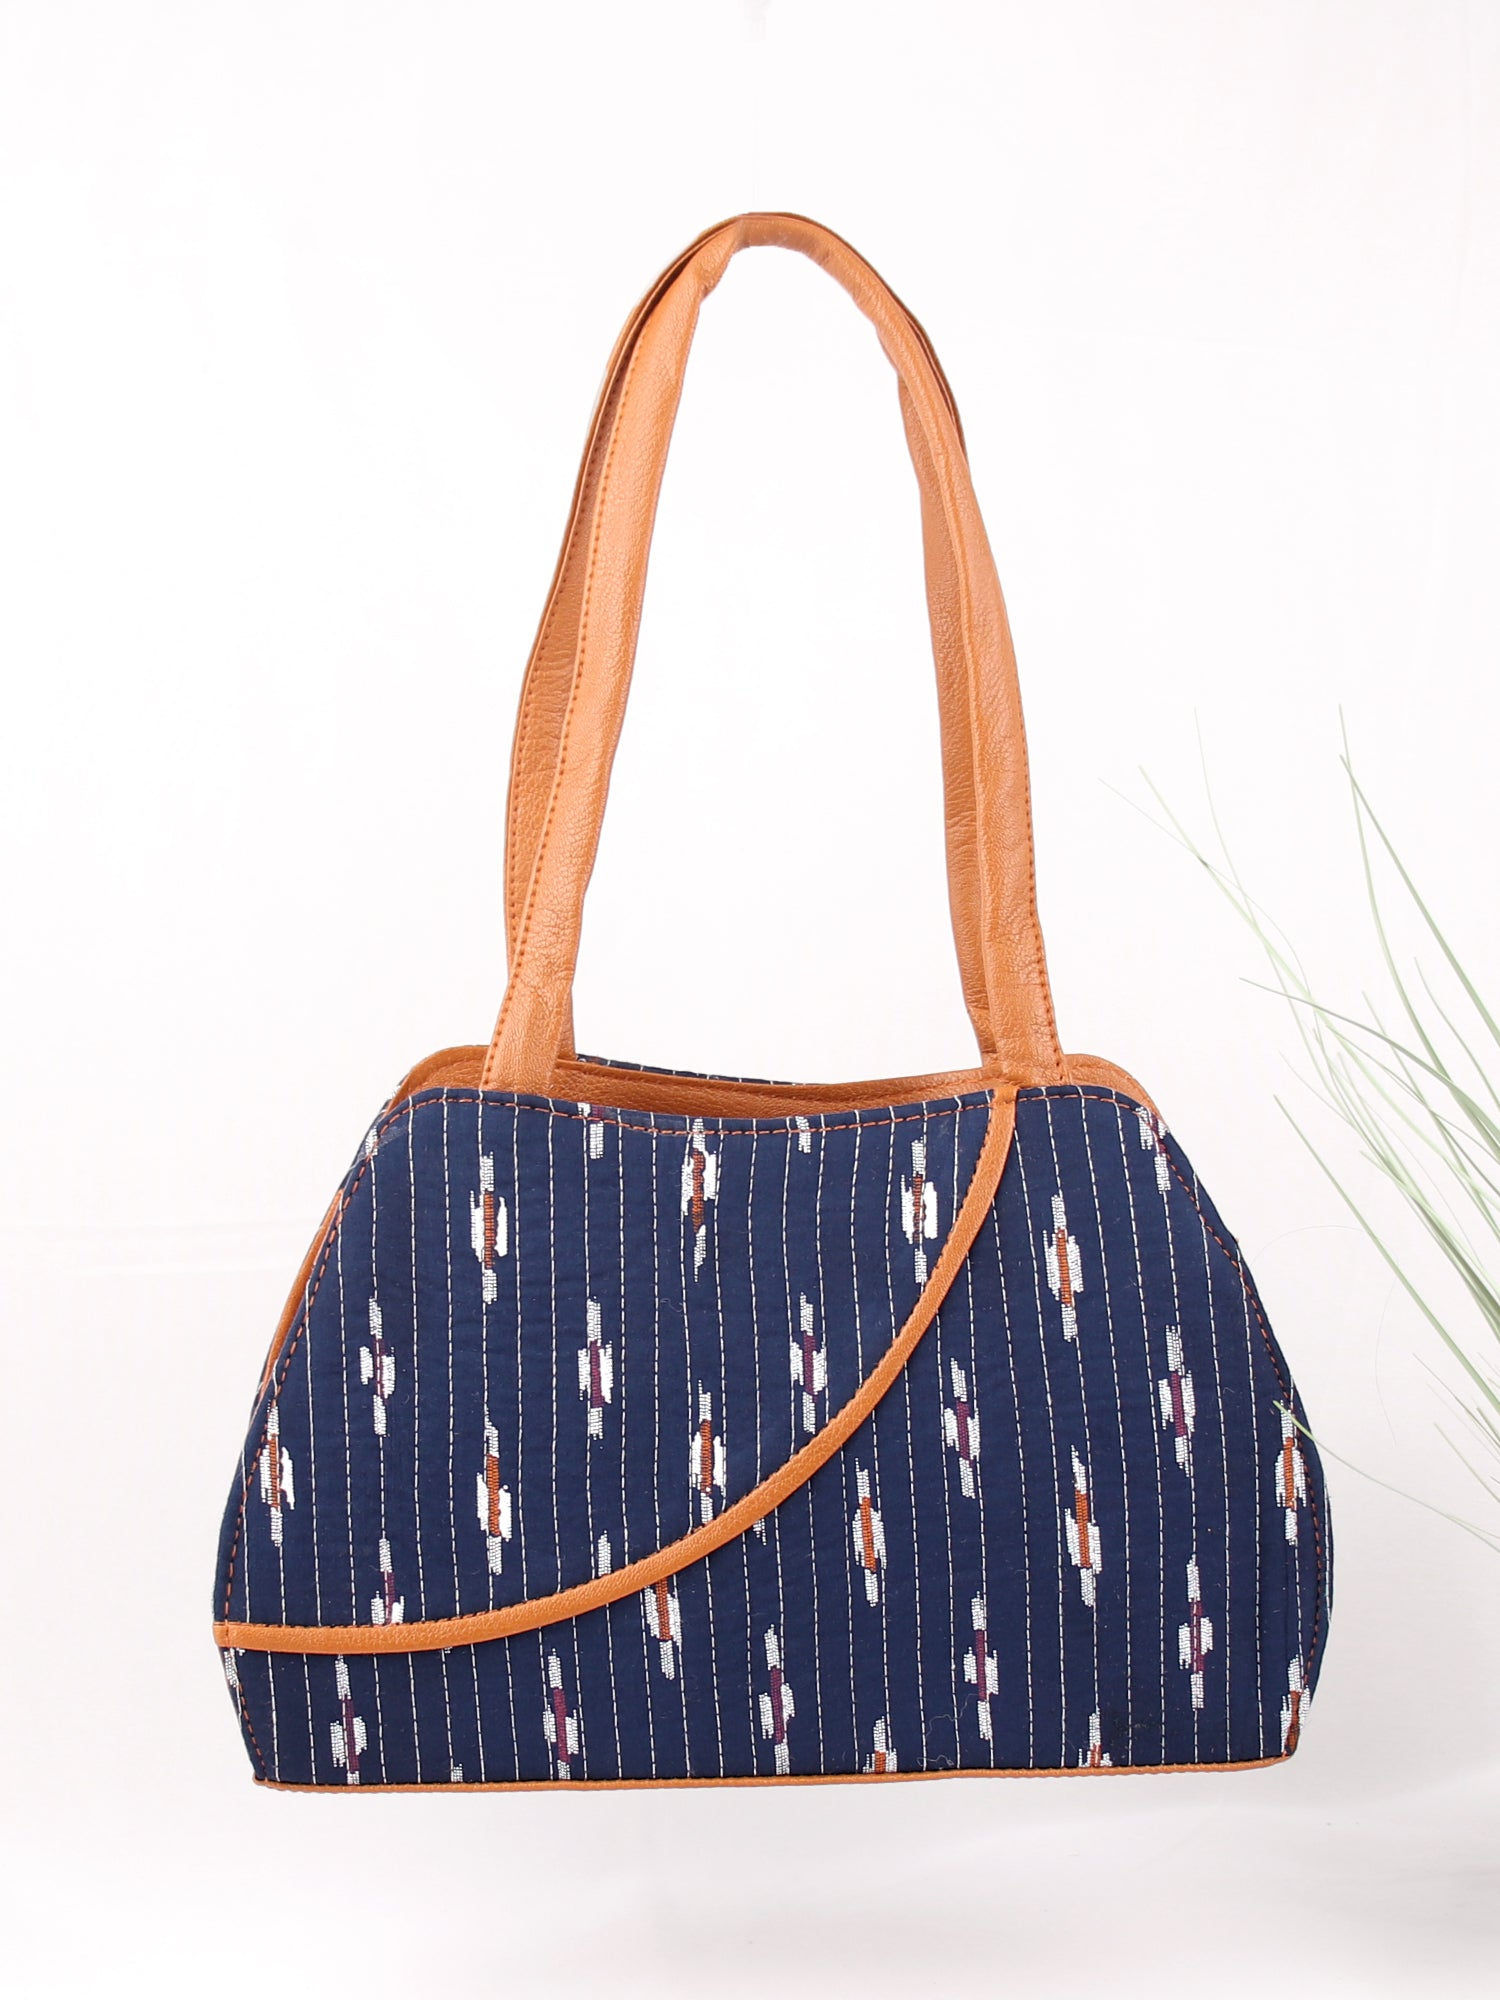 GYPSY SOUL HANDBAG IN NAVY